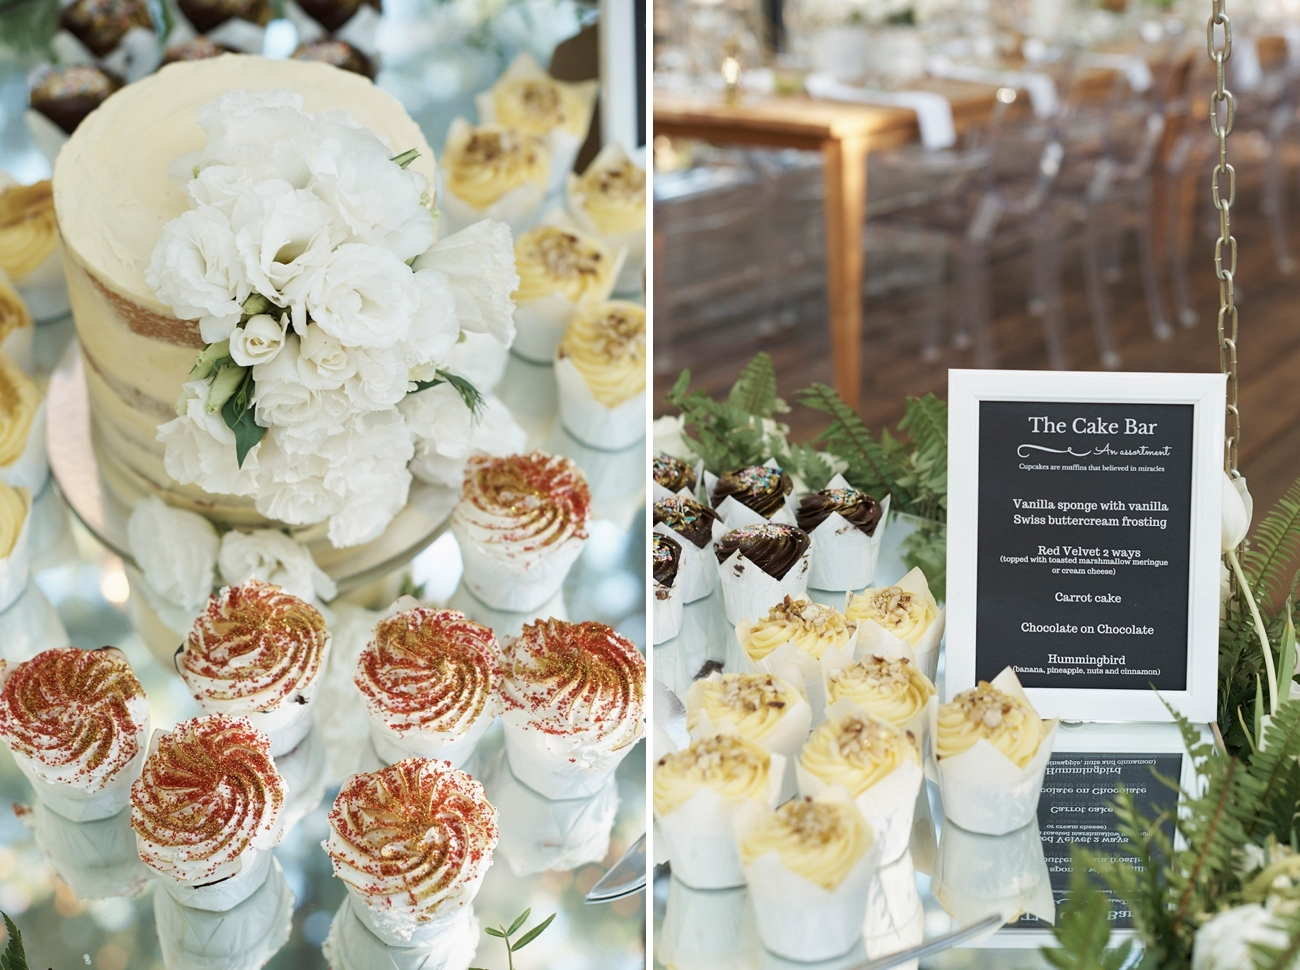 Wedding Cake Bar | Image: Knit Together Photography